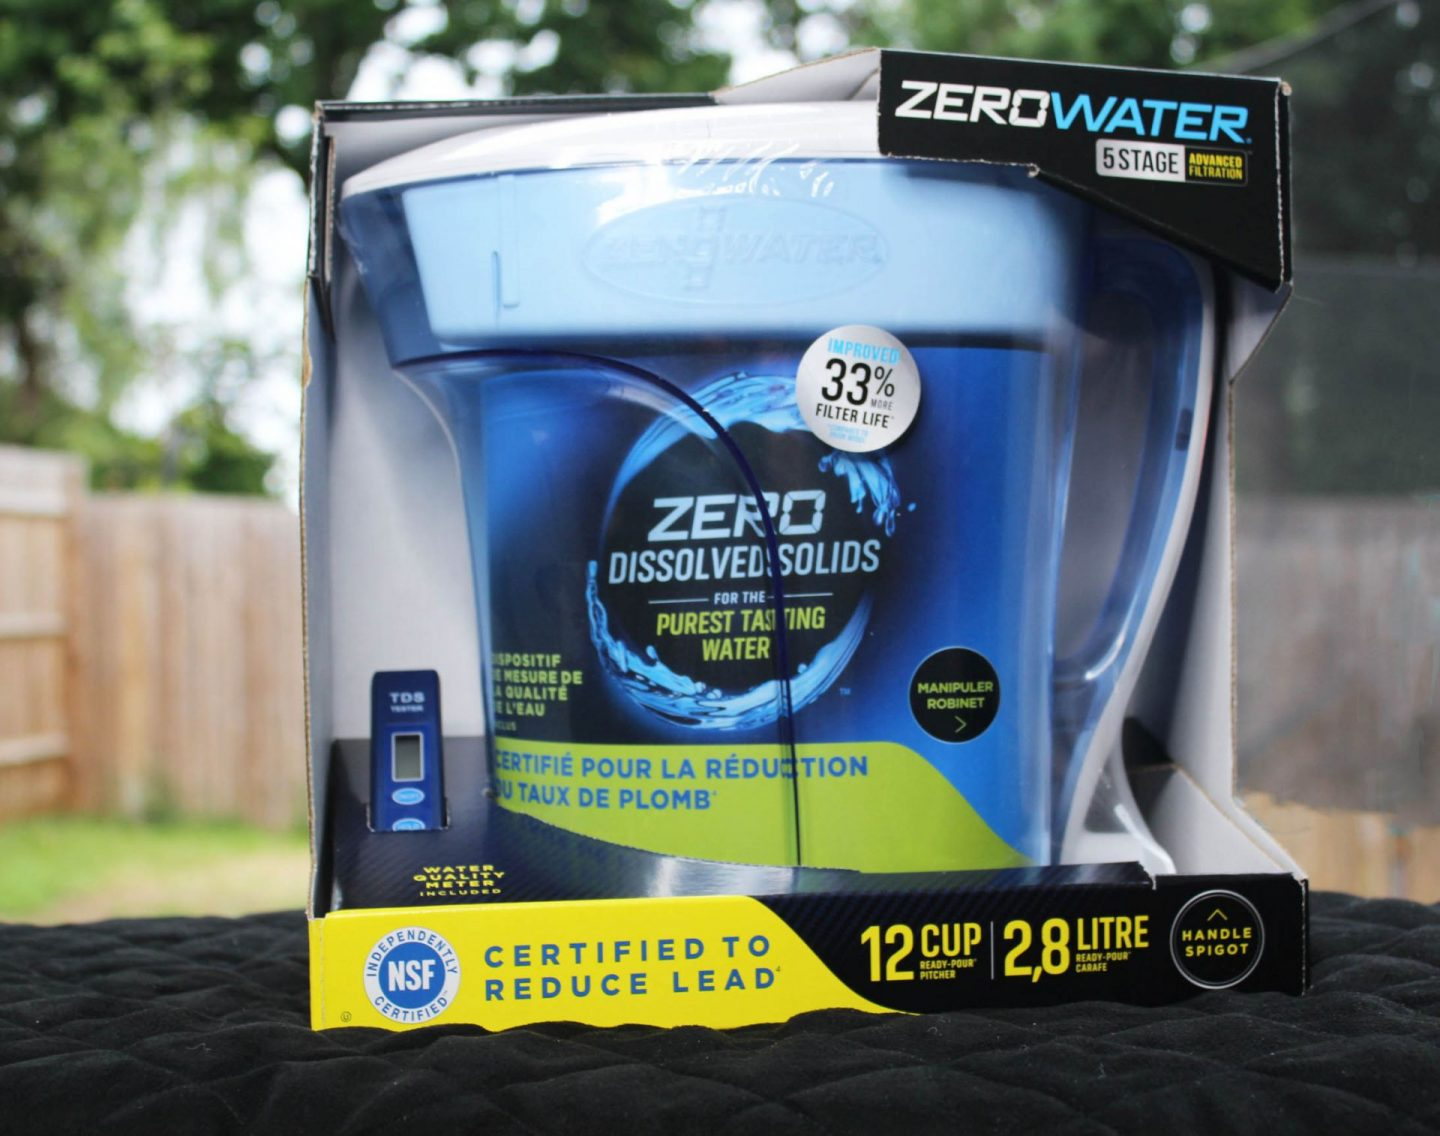 Zerowater jug in its box.